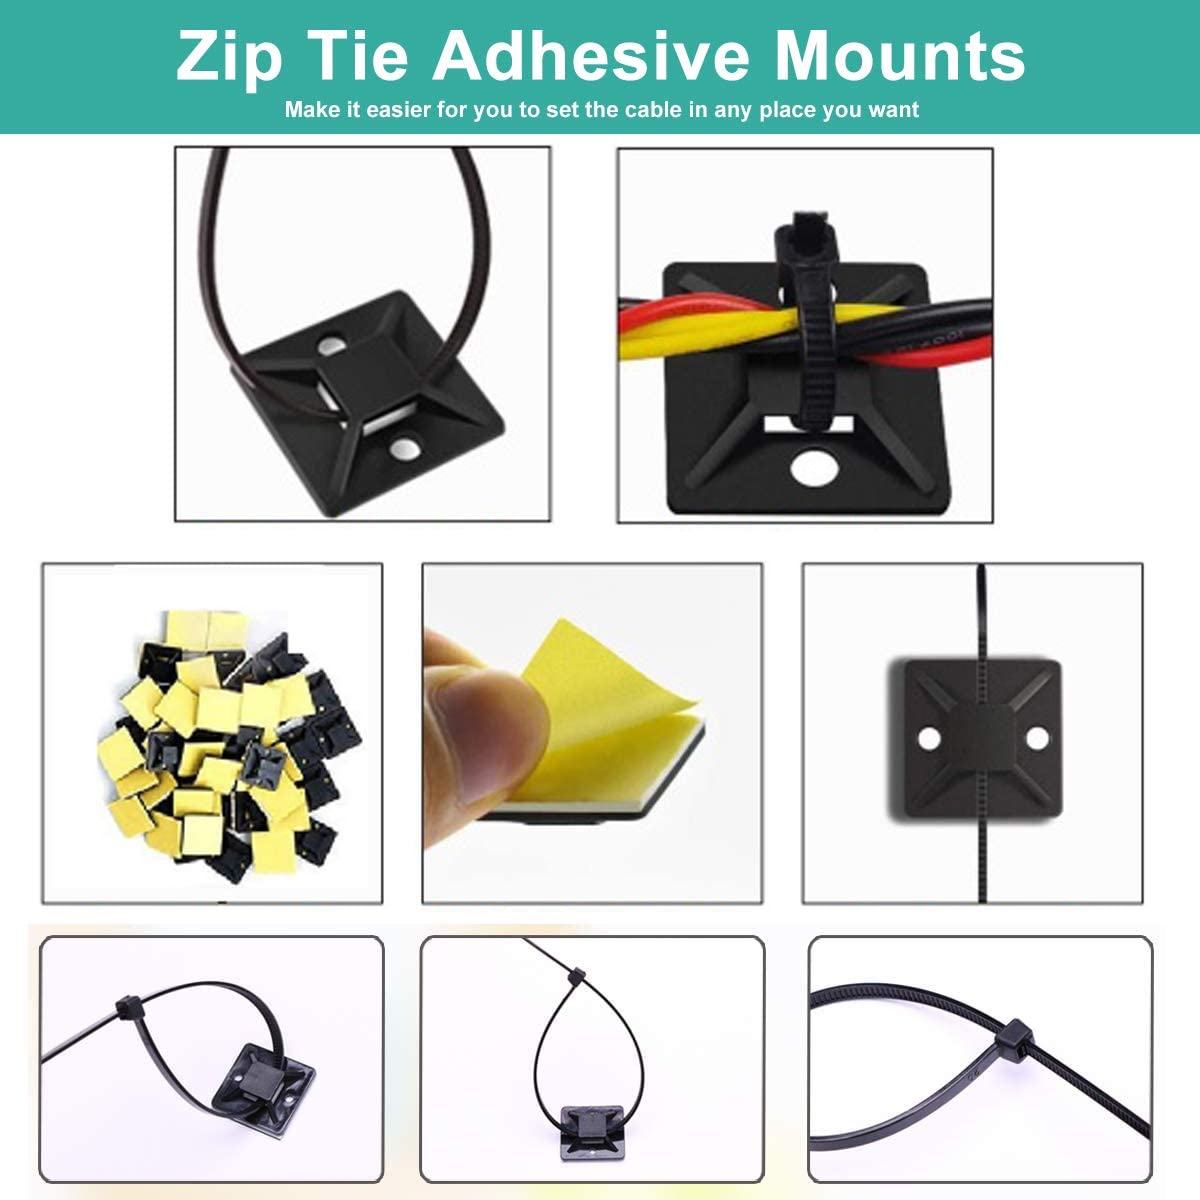 PLDDS Cable Zip Ties 500 Packs Durable Self-Locking Nylon Cable Zip Ties 4//6//8//10//12 Inch with 50 Pcs Cable Mount Black Black Heavy Duty Perfect for Home,Office,Garage and Workshop UV Resistant